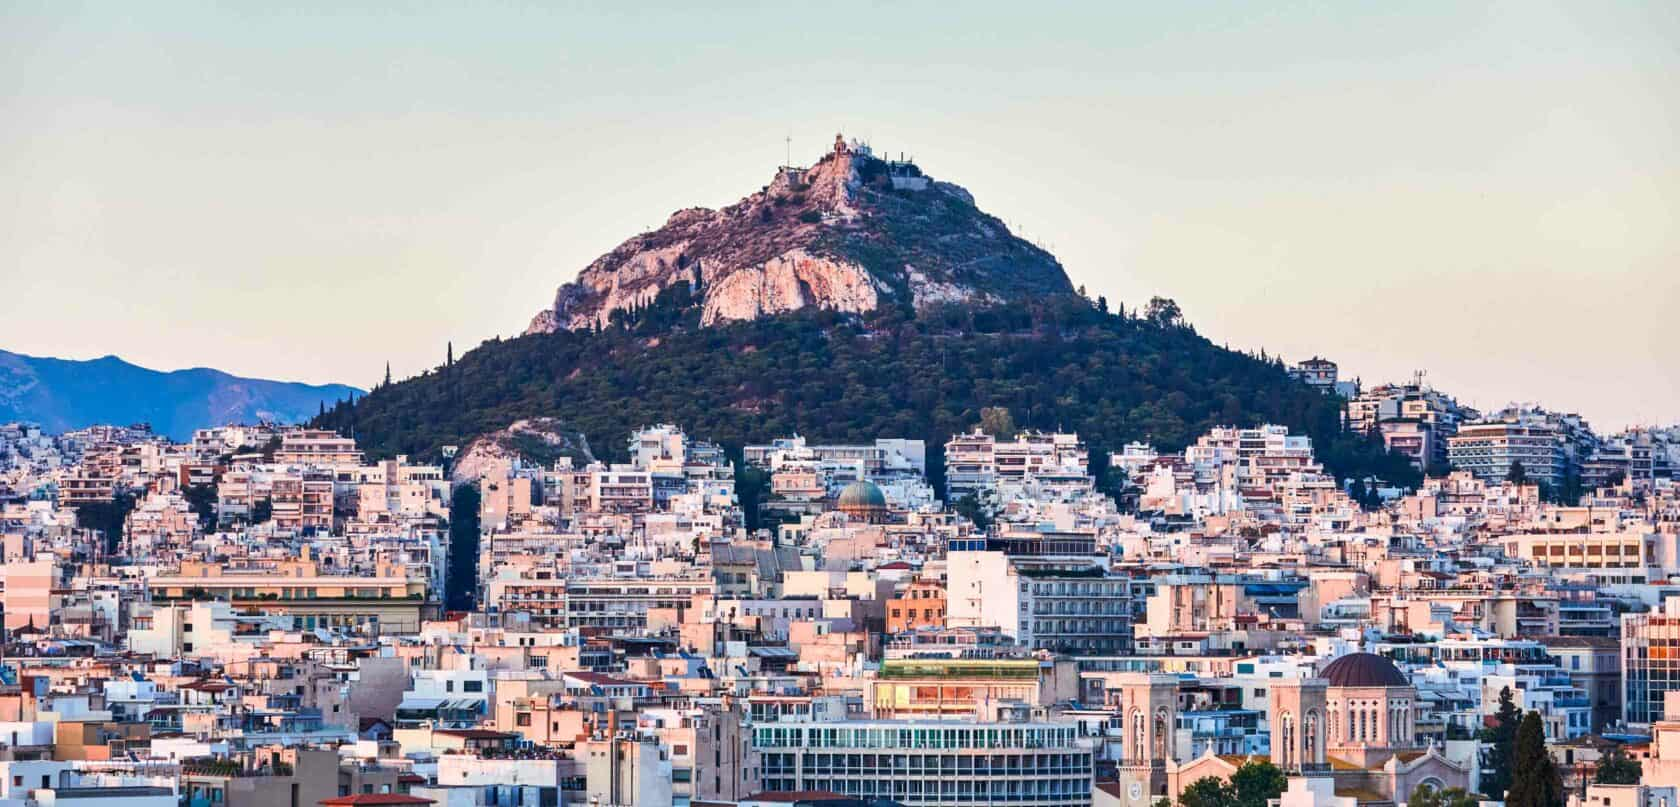 A view of the city of Athens.